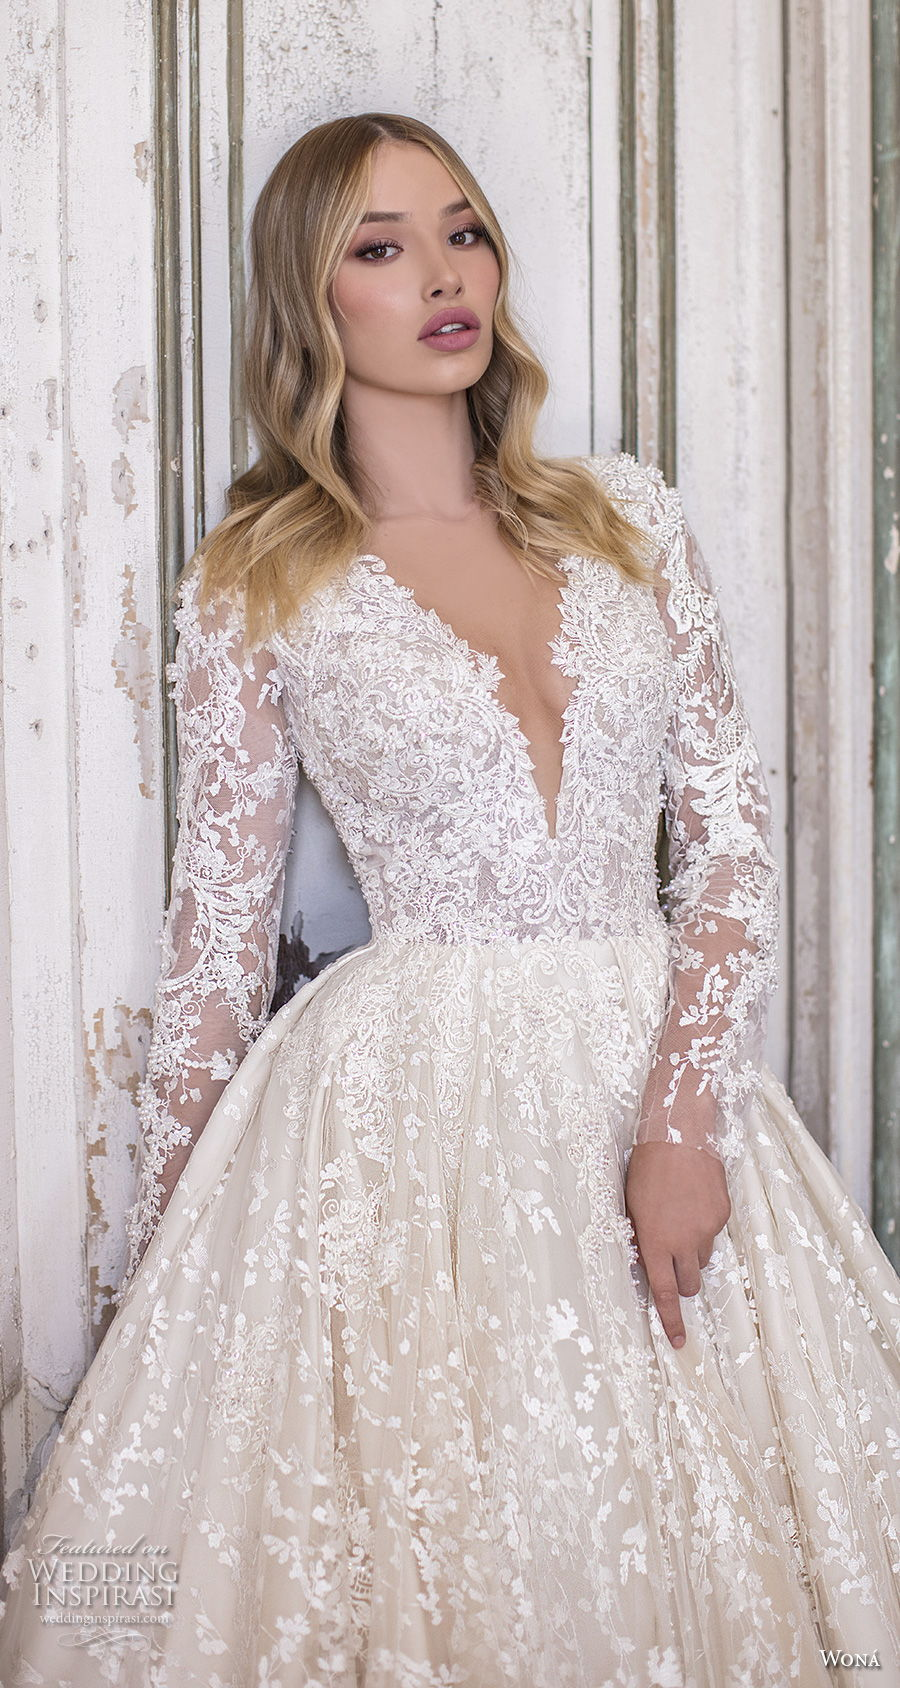 wona 2020 couture bridal long sleeves deep sweetheart neckline full embellishment glamorous princess ball gown a  line wedding dress covered back chapel train (3) zv